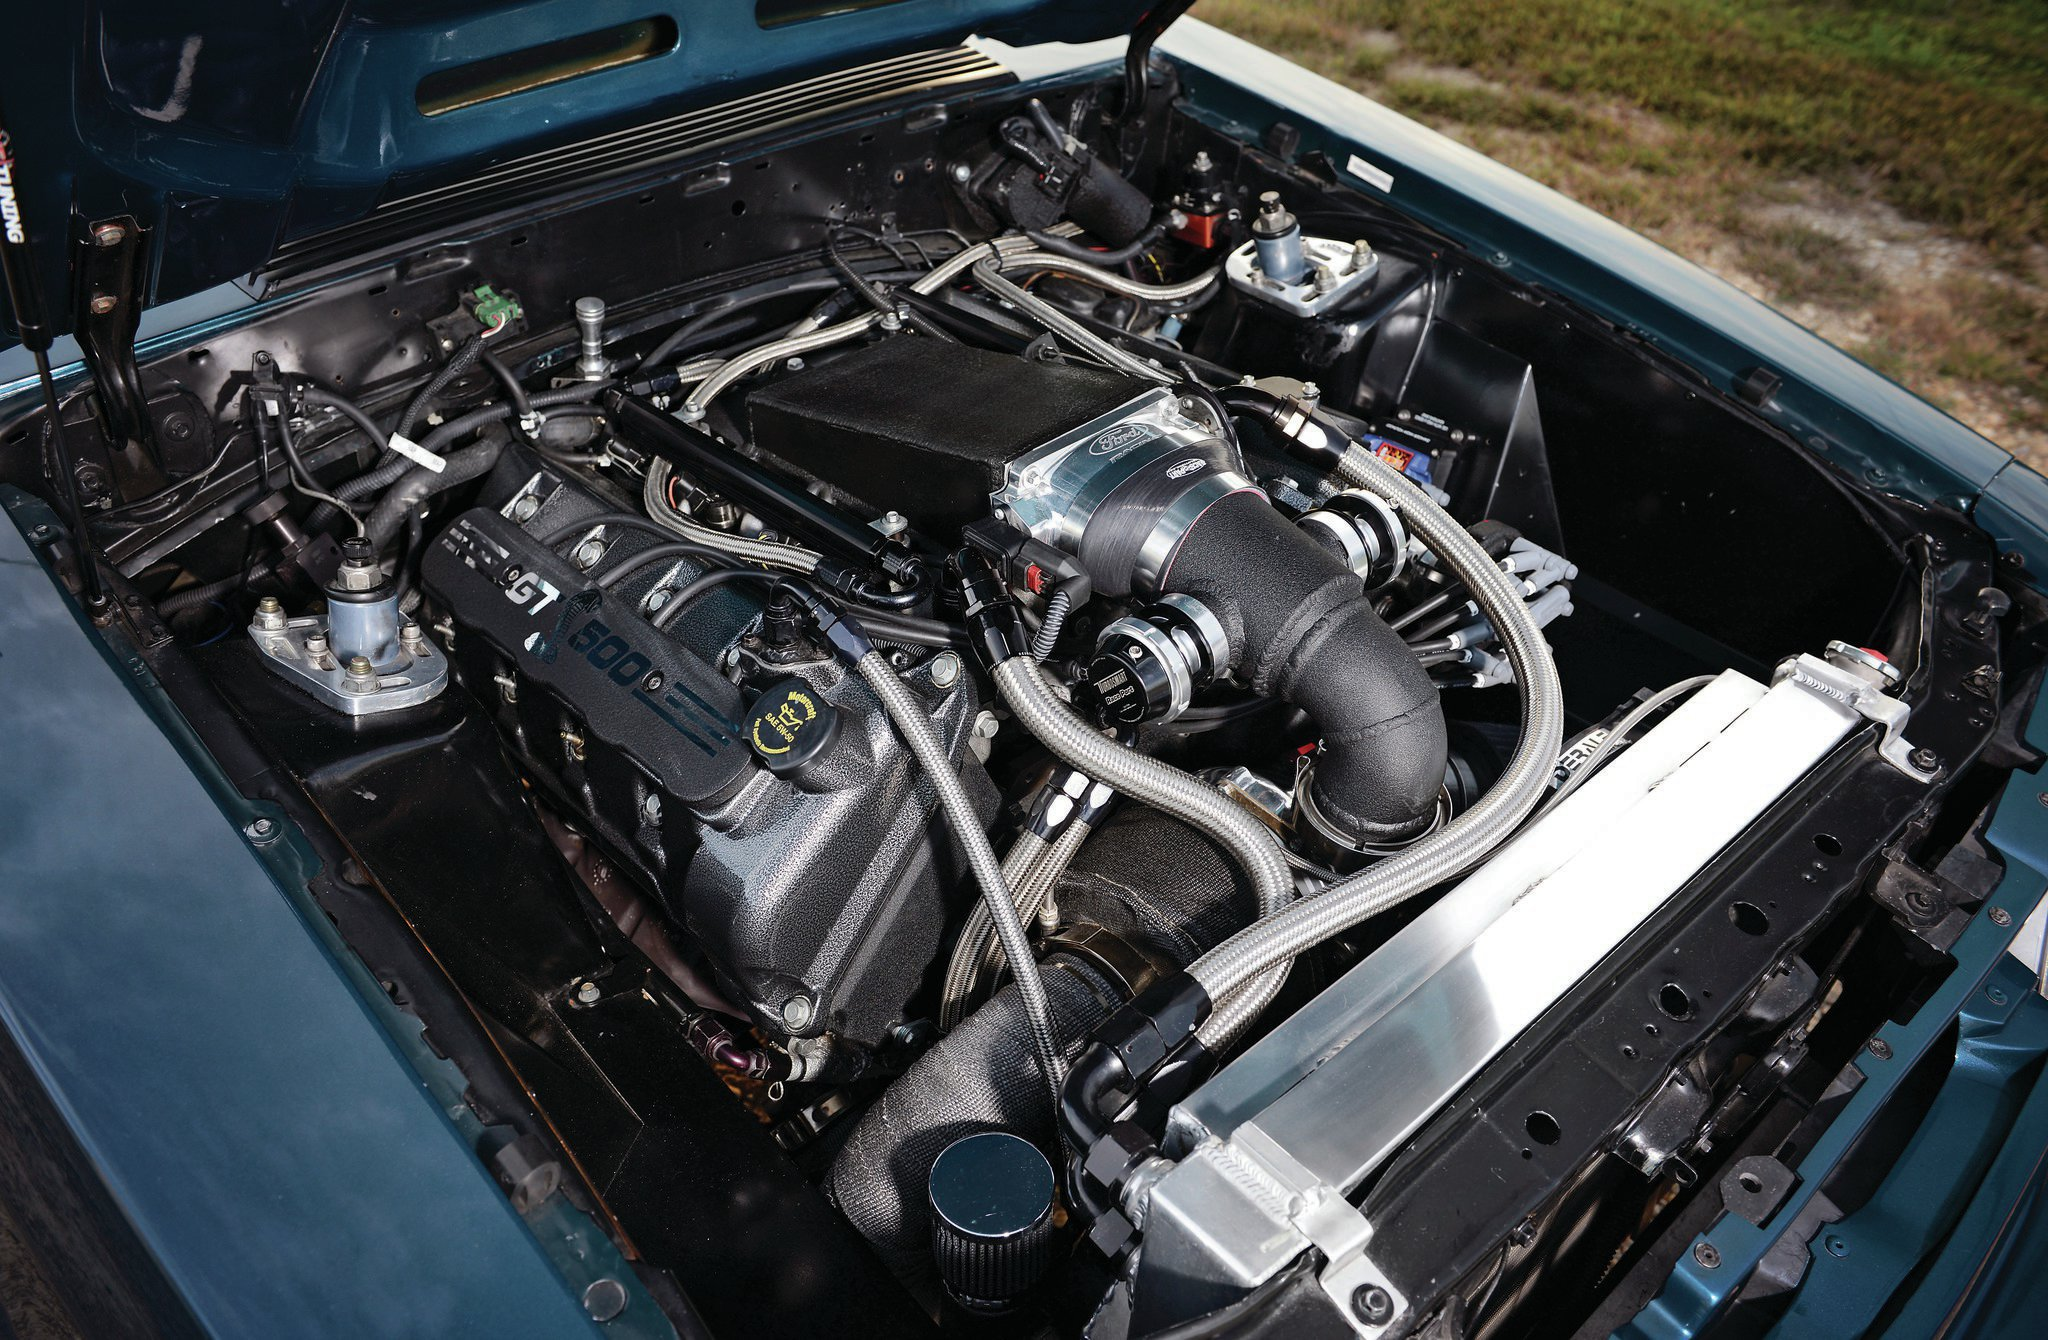 1993 Ford Mustang Lx Coupe Engine